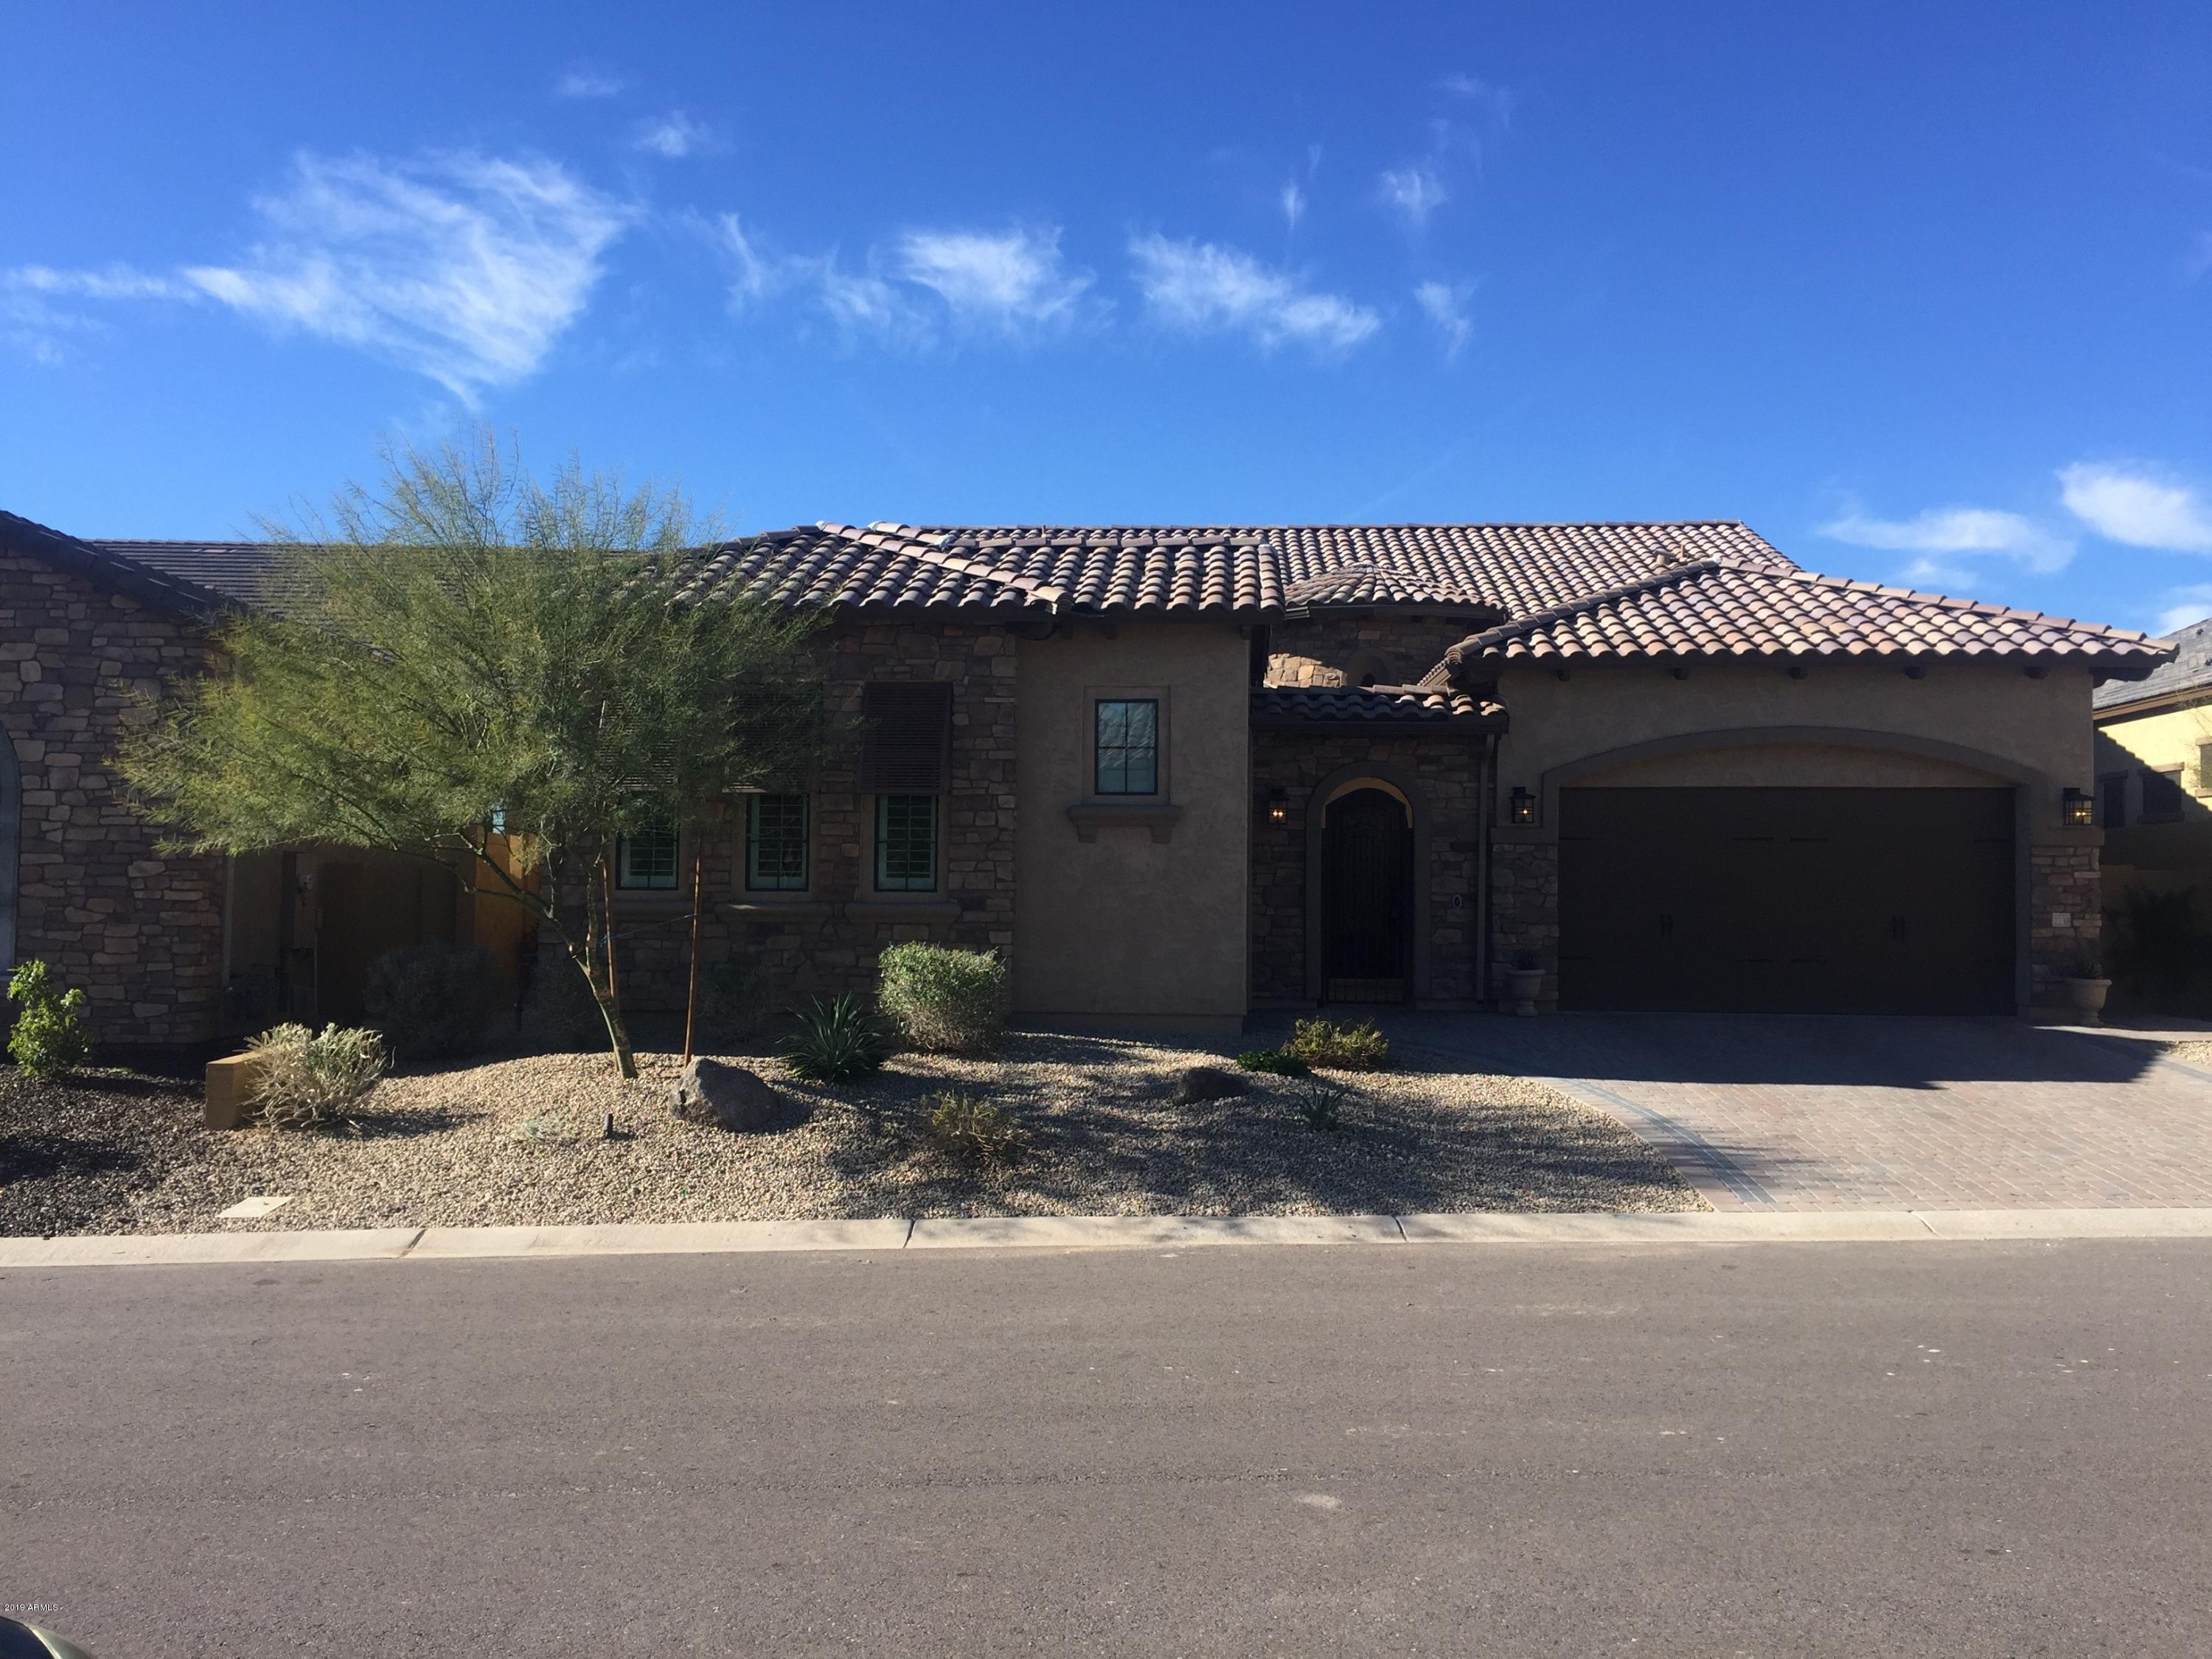 Photo of 2238 N Estates Circle, Mesa, AZ 85207